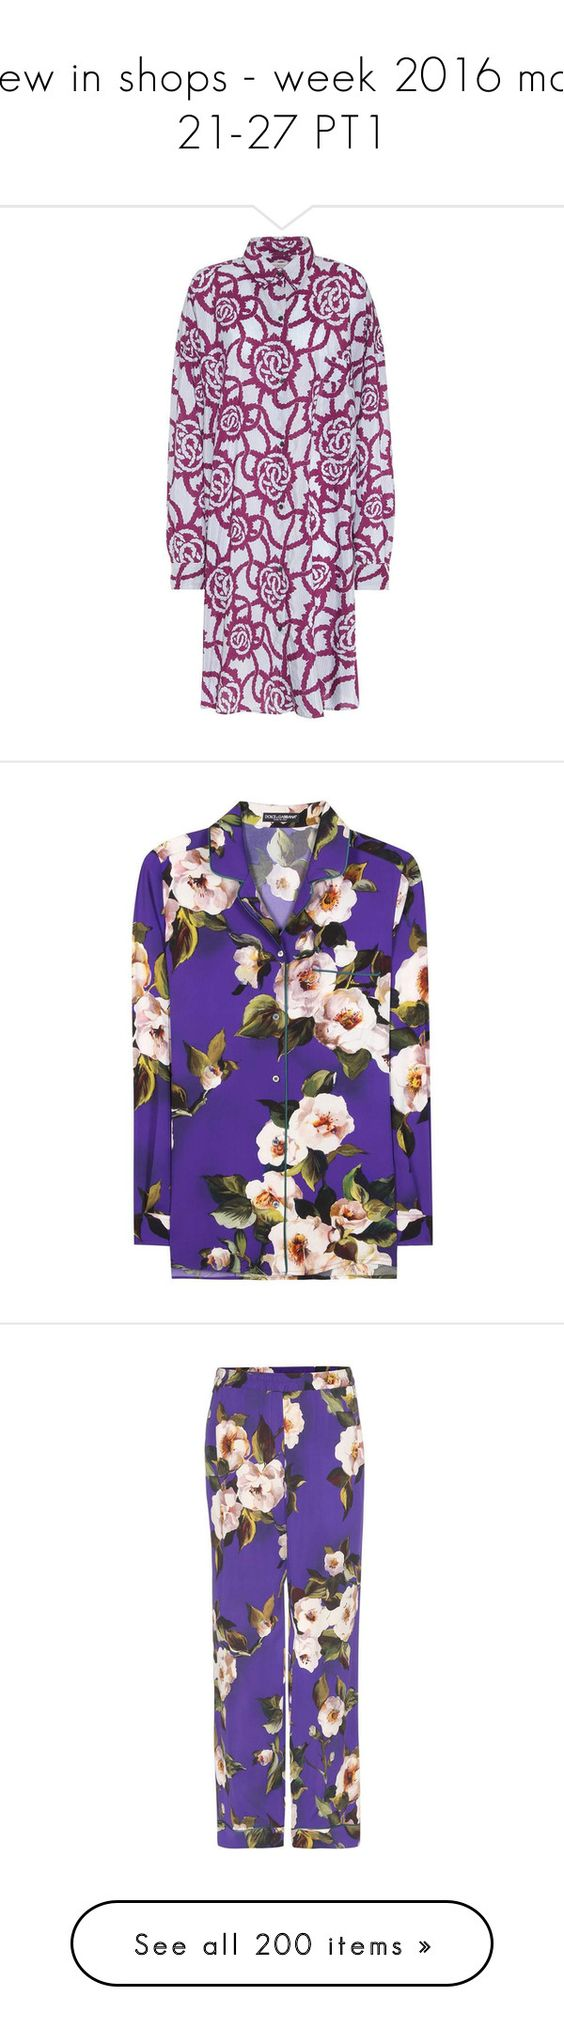 """""""new in shops - week 2016 mar 21-27 PT1"""" by aaliyah ❤ liked on Polyvore featuring dresses, purple dress, cotton blend dresses, tops, purple top, dolce gabbana top, purple silk shirt, dolce gabbana shirt, multi color shirt and pants"""